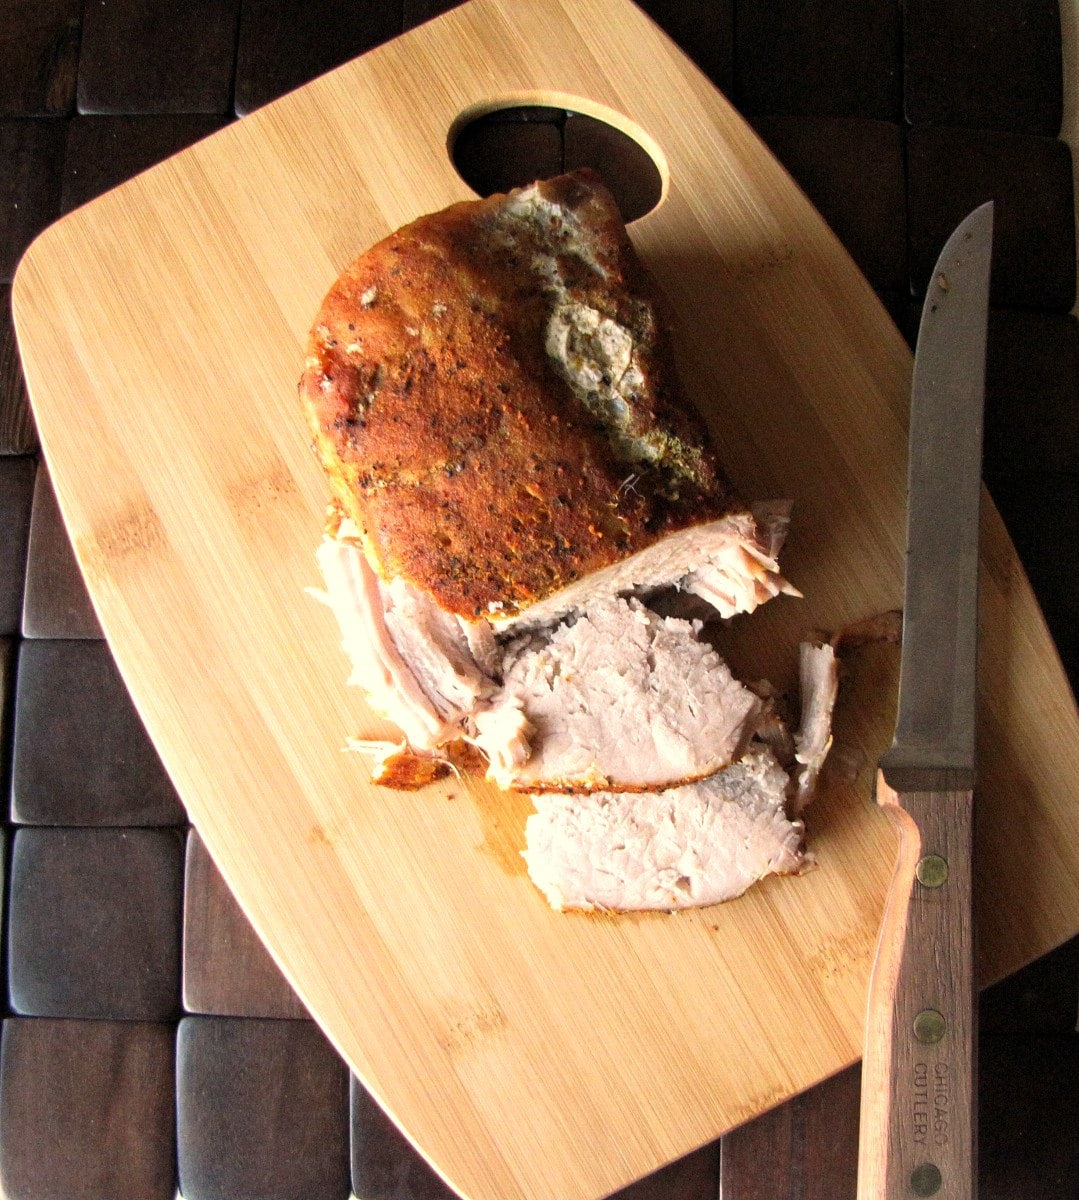 pork roast on carving board, knife and two slices